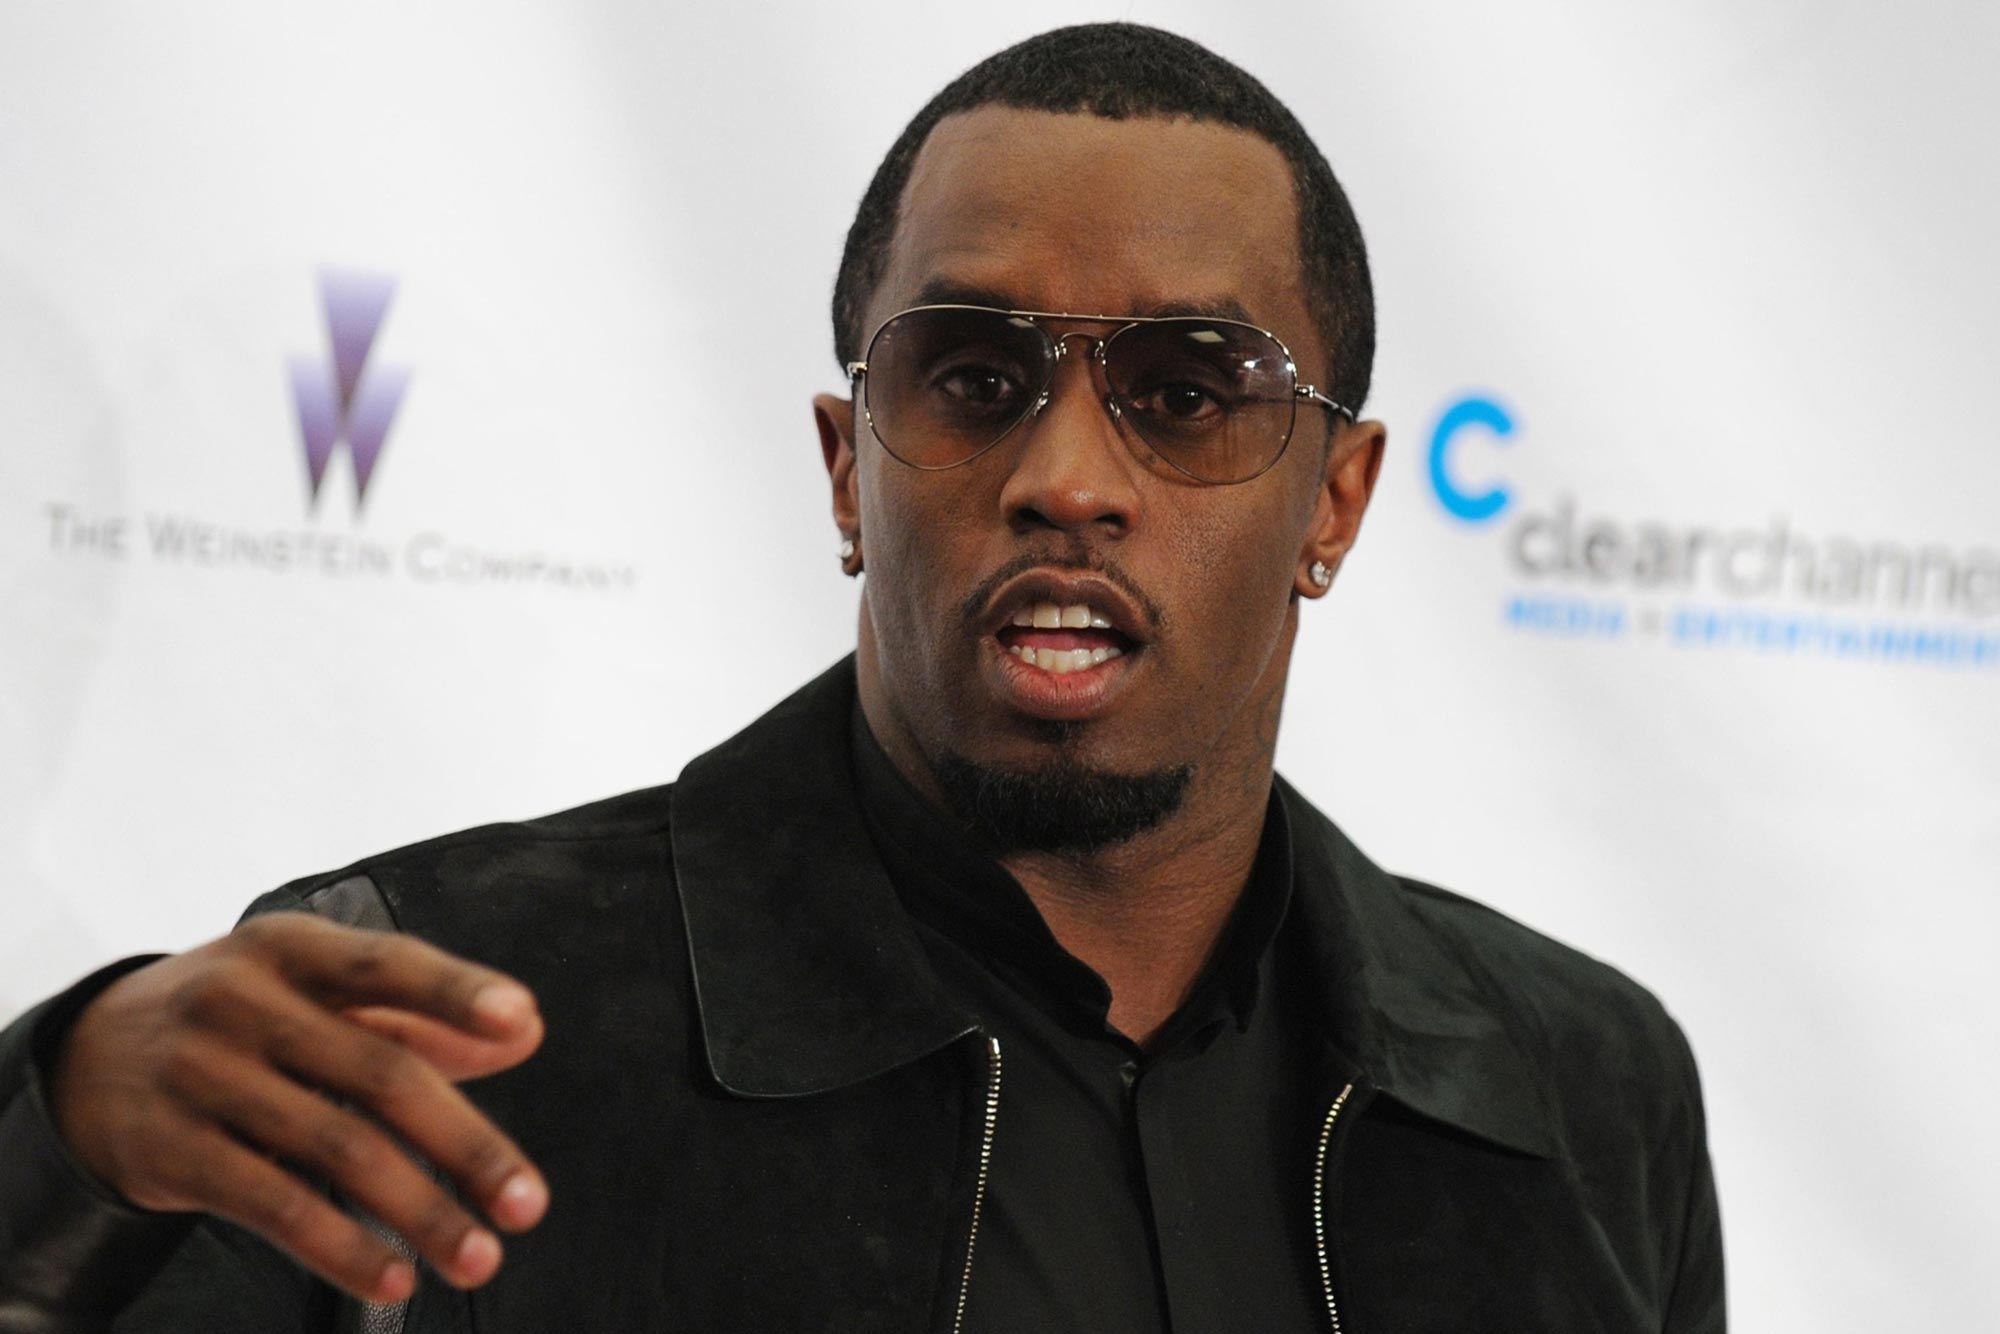 Sean Combs is latest media mogul to call on Madison Ave to invest more in Black-owned media